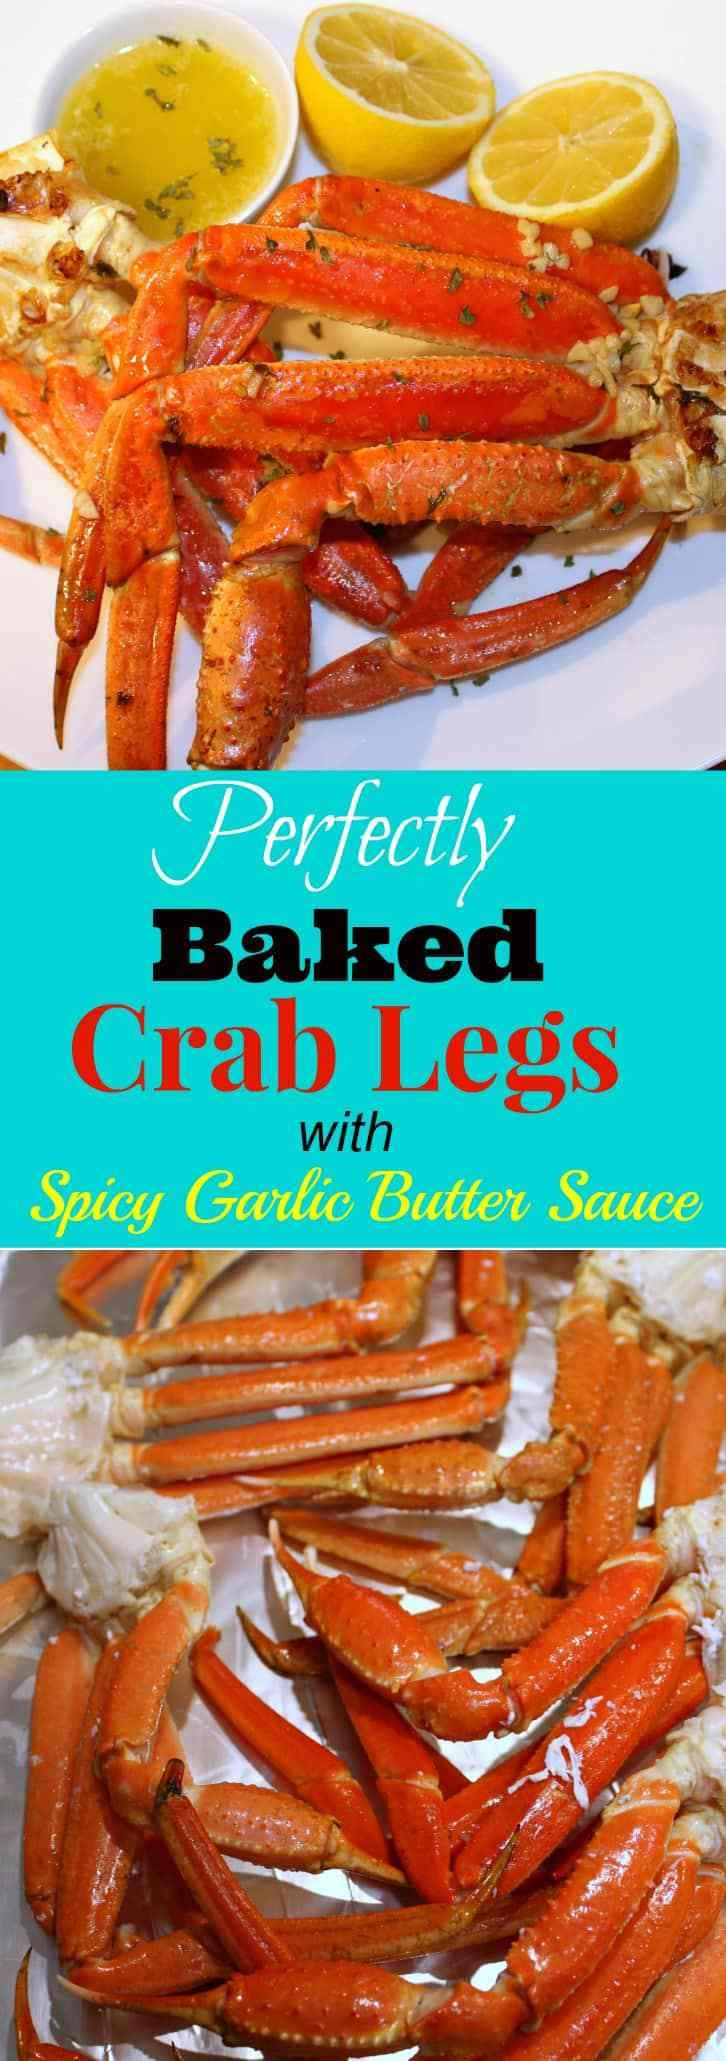 Seafood:  Perfectly Baked Crab Legs with Spicy Garlic Butter.